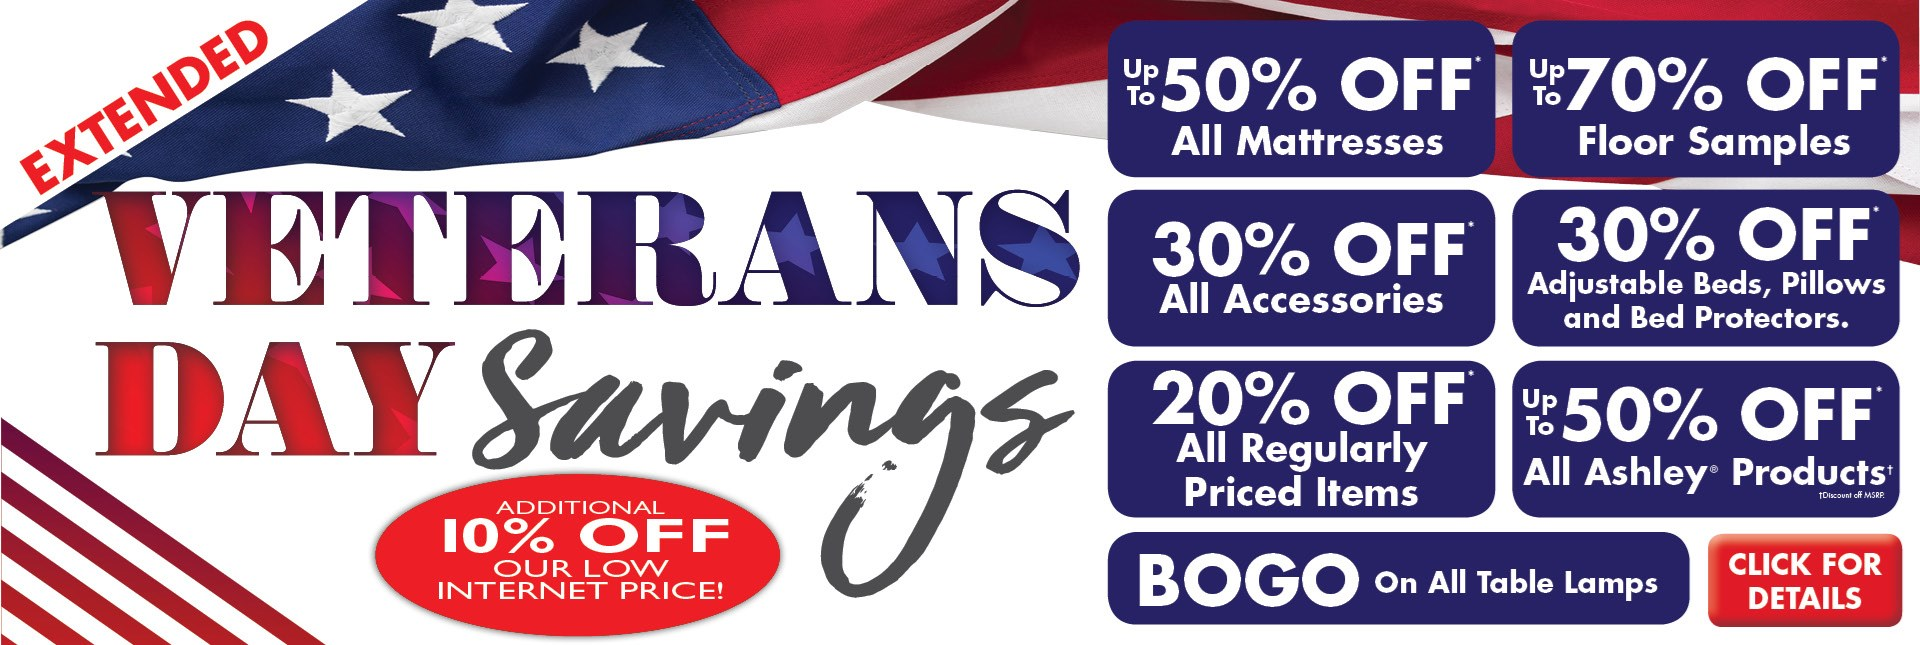 Veteran's Day Sale Extended